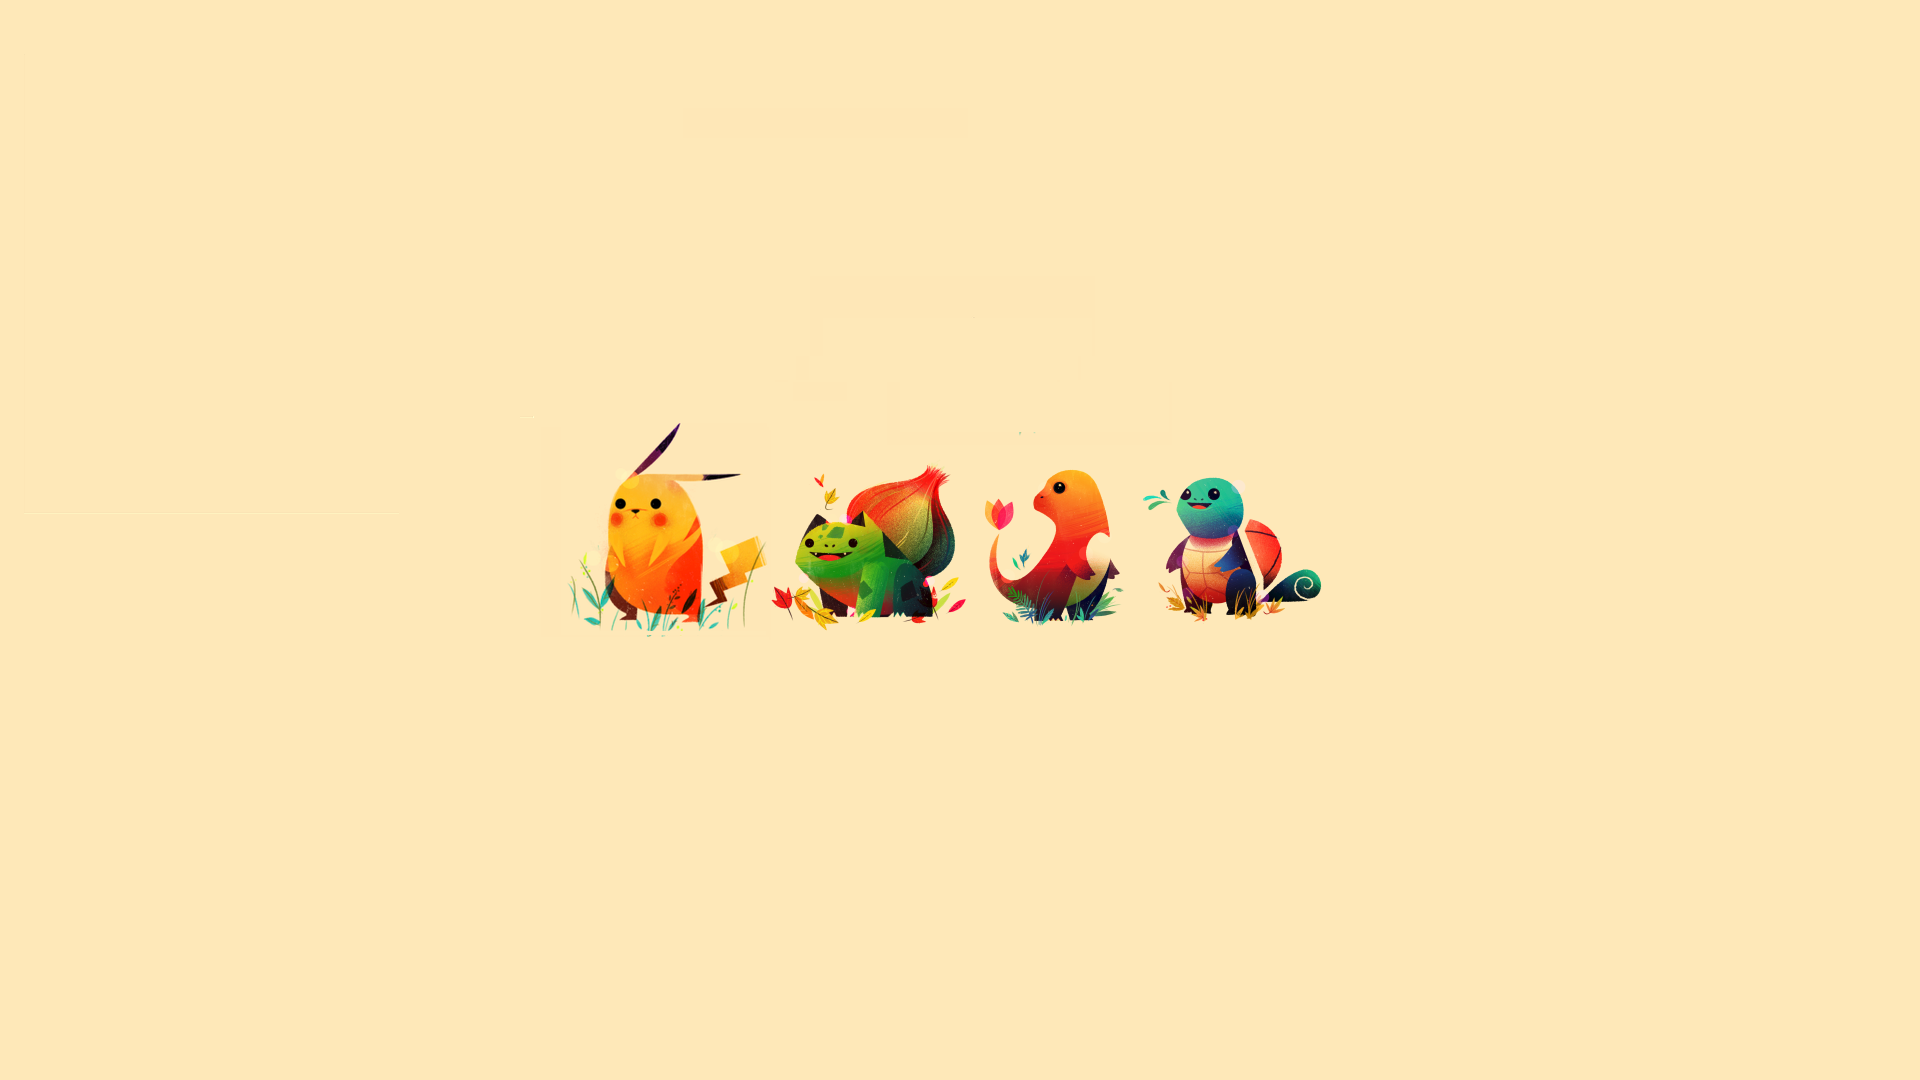 317 Pikachu HD Wallpapers Background Images 1920x1080